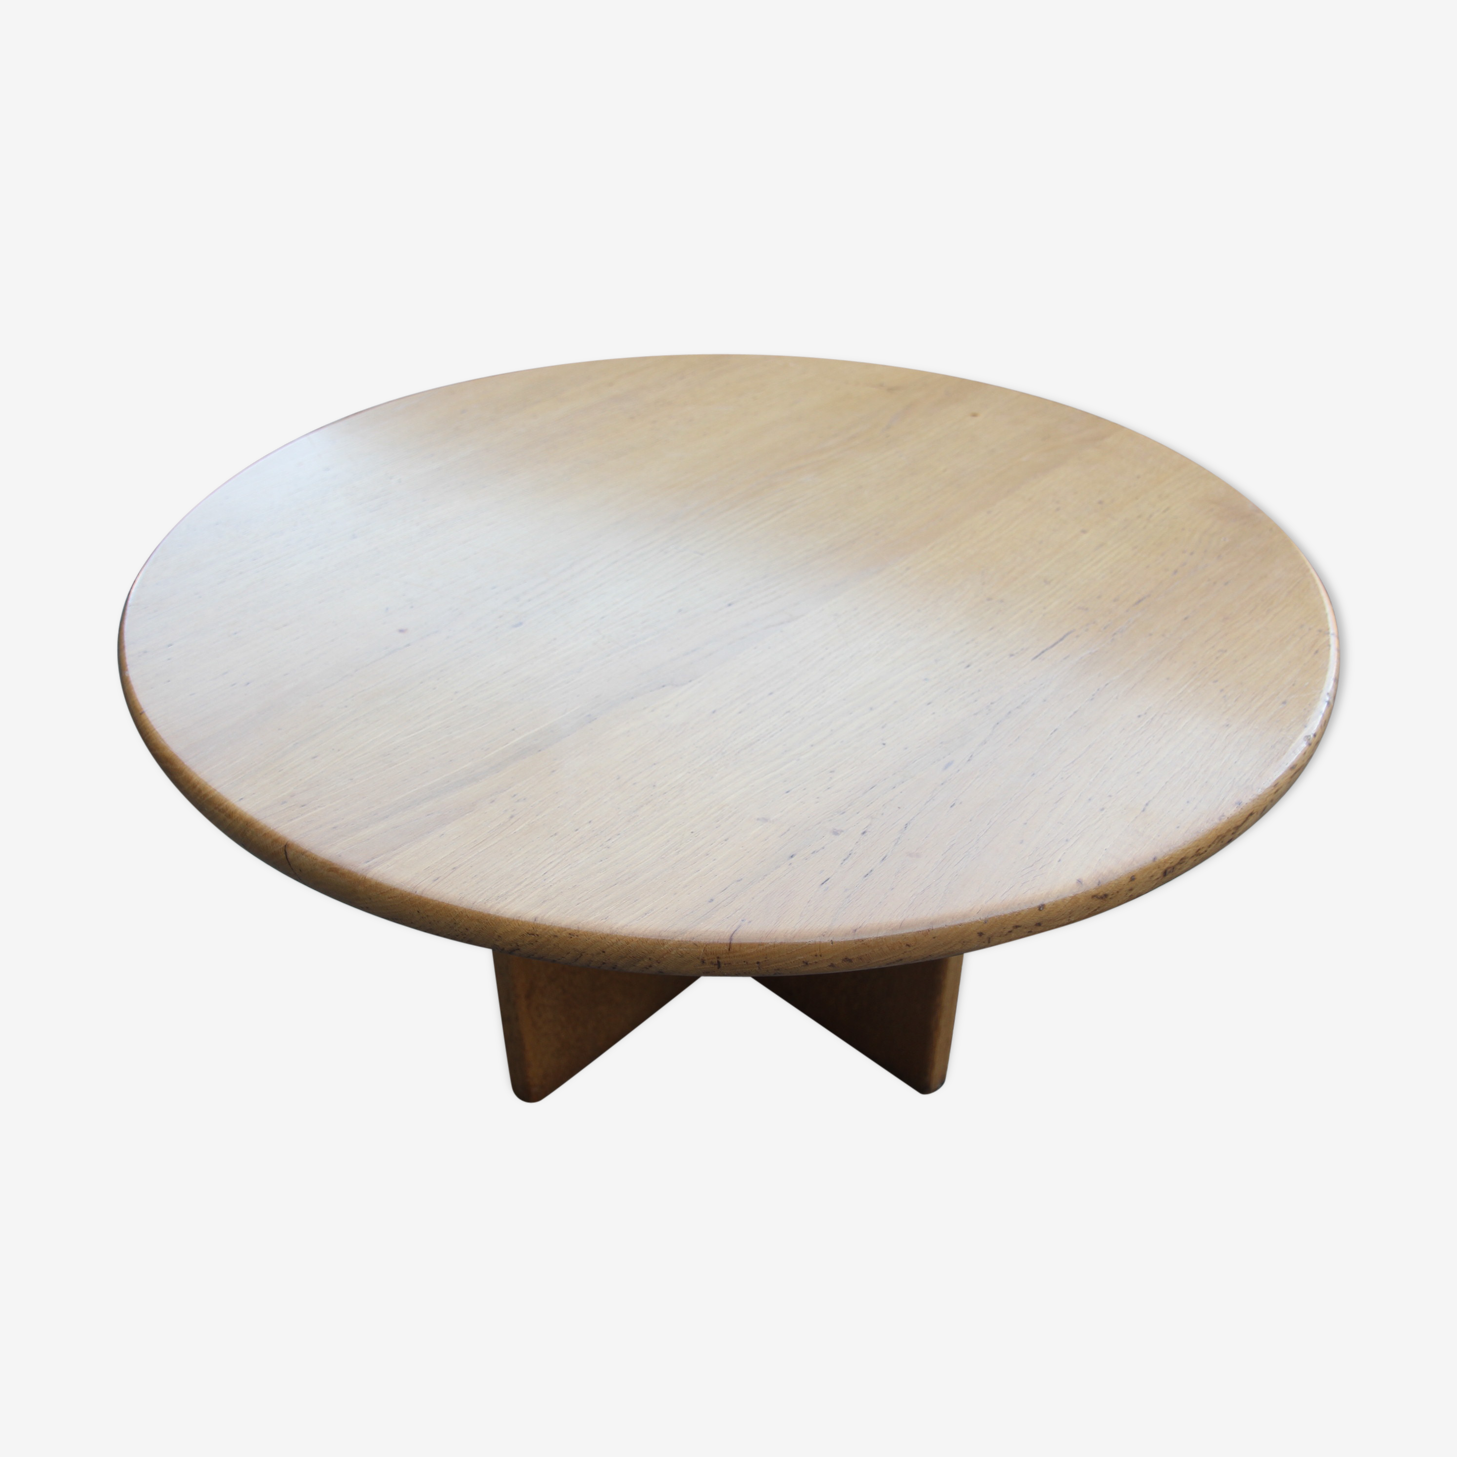 Round coffee table based on the cross